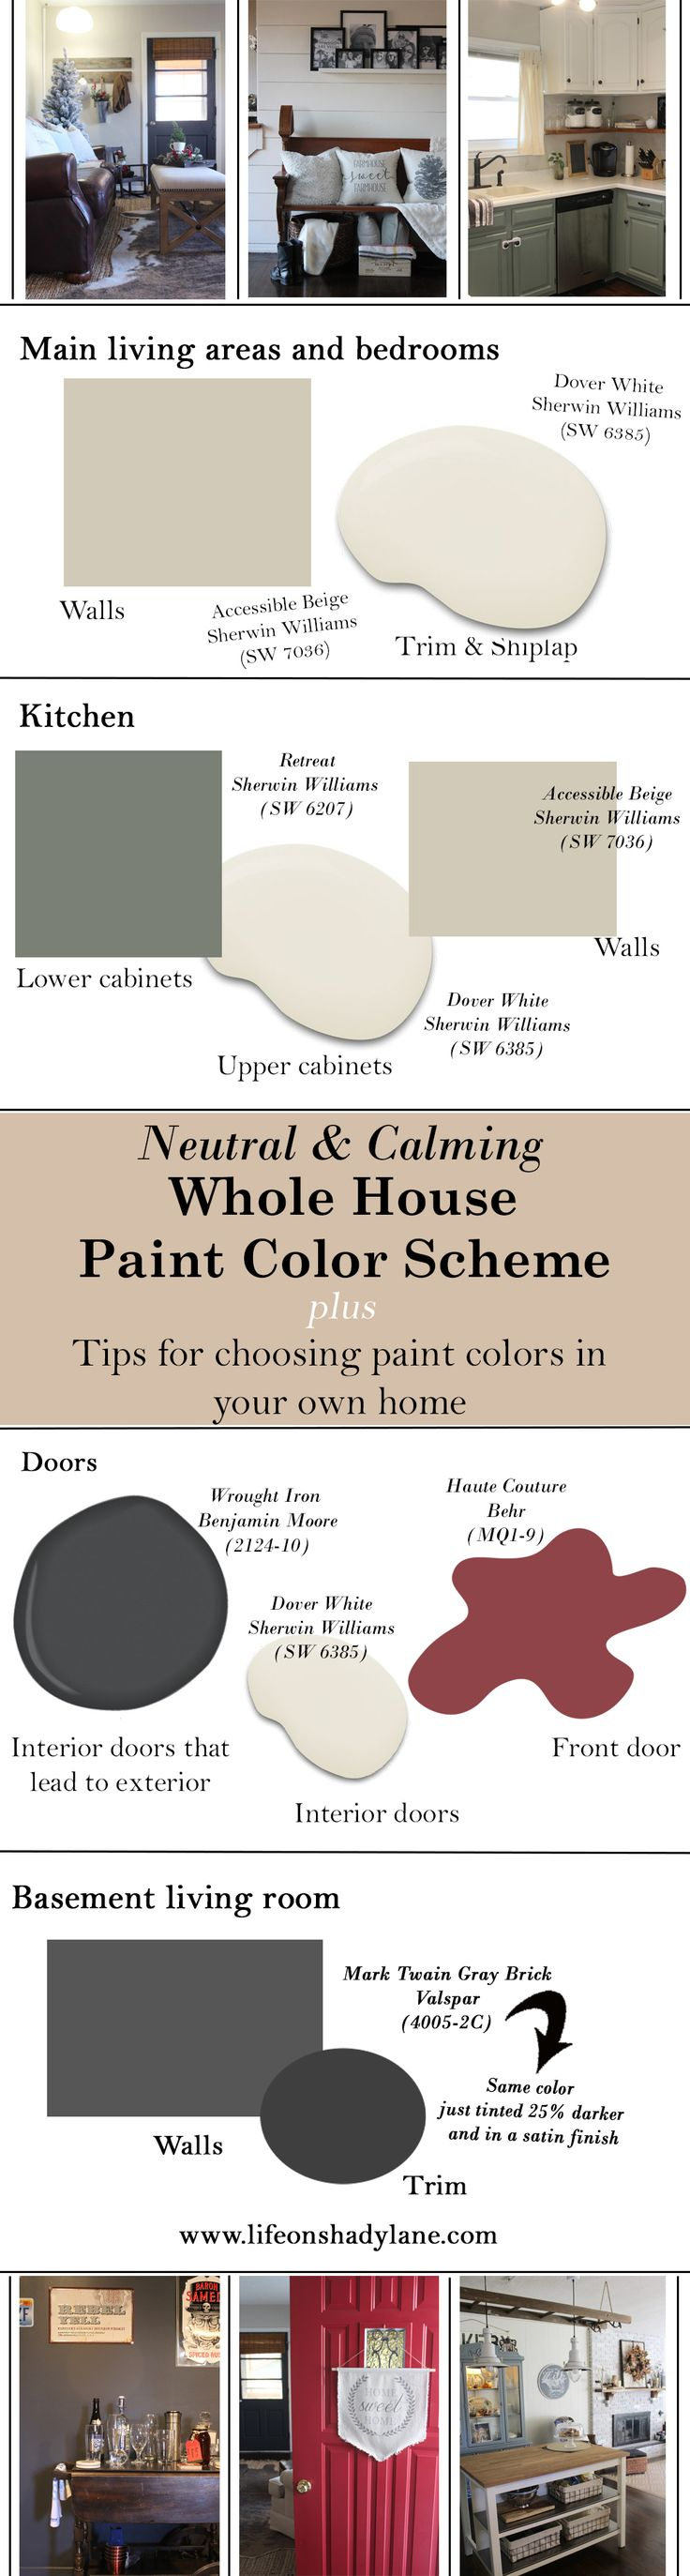 17 best ideas about neutral color scheme on pinterest for Choose paint color scheme